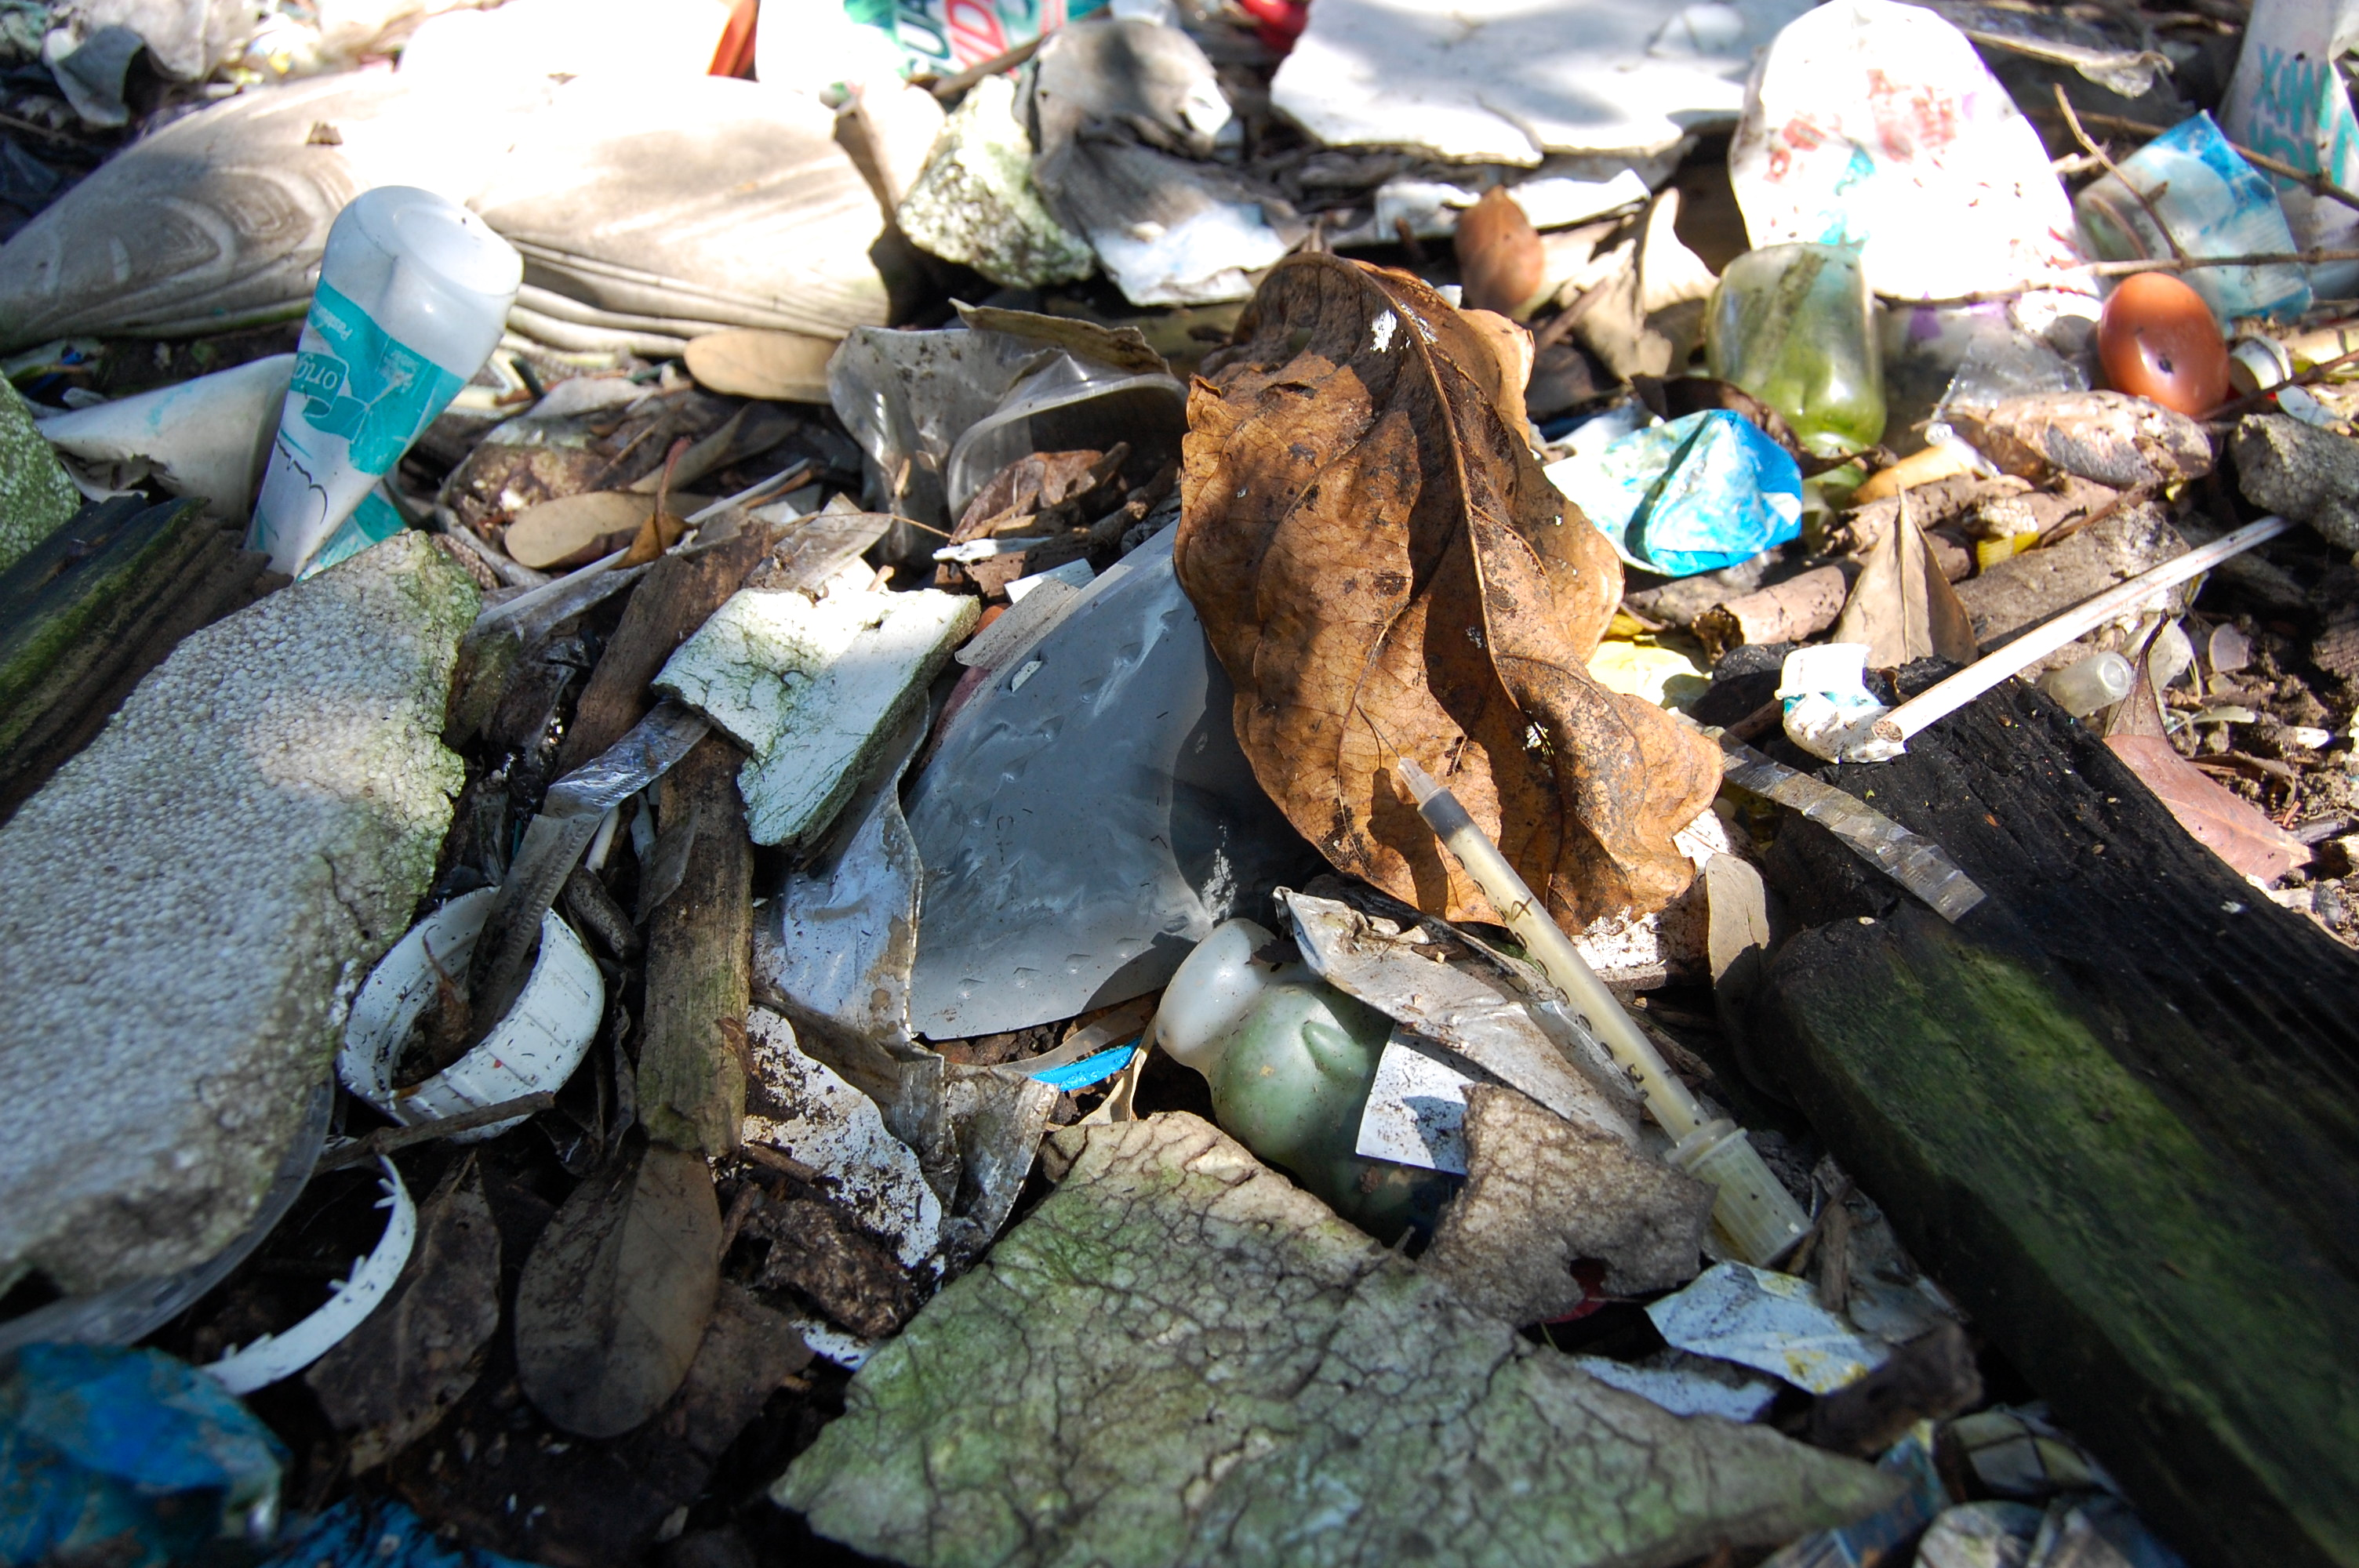 A syringe sits on top of other garbage lining the shores of Rio's Guanabara Bay